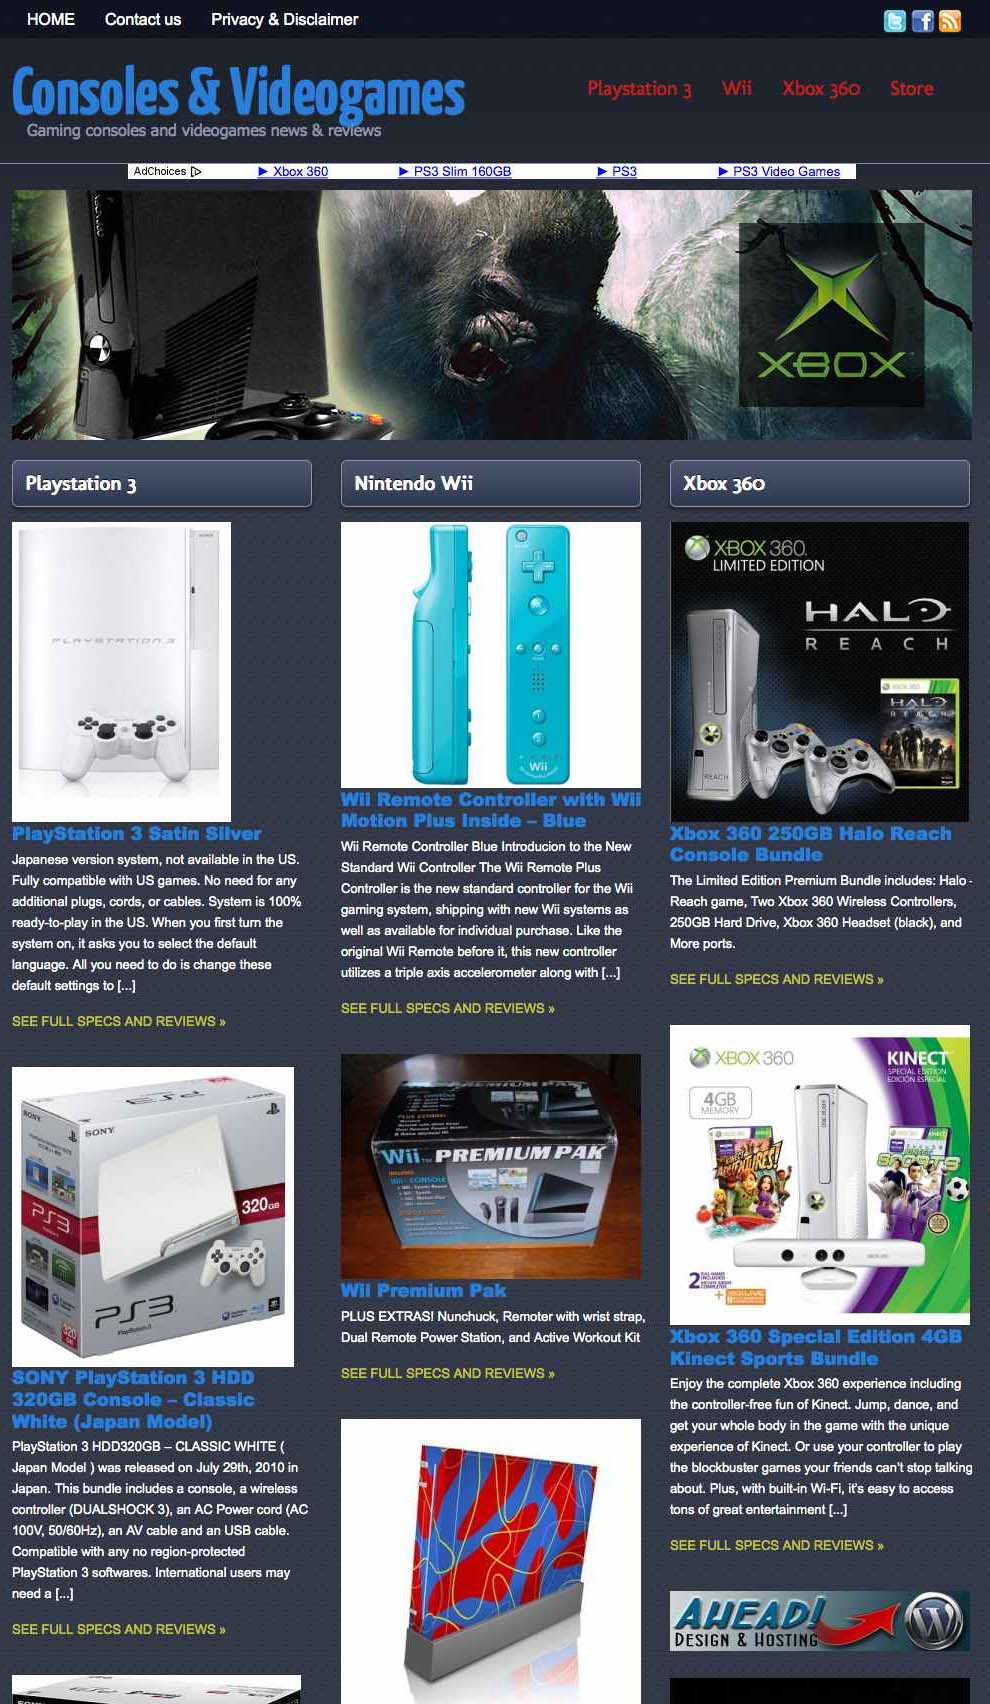 Consoles and Videogames